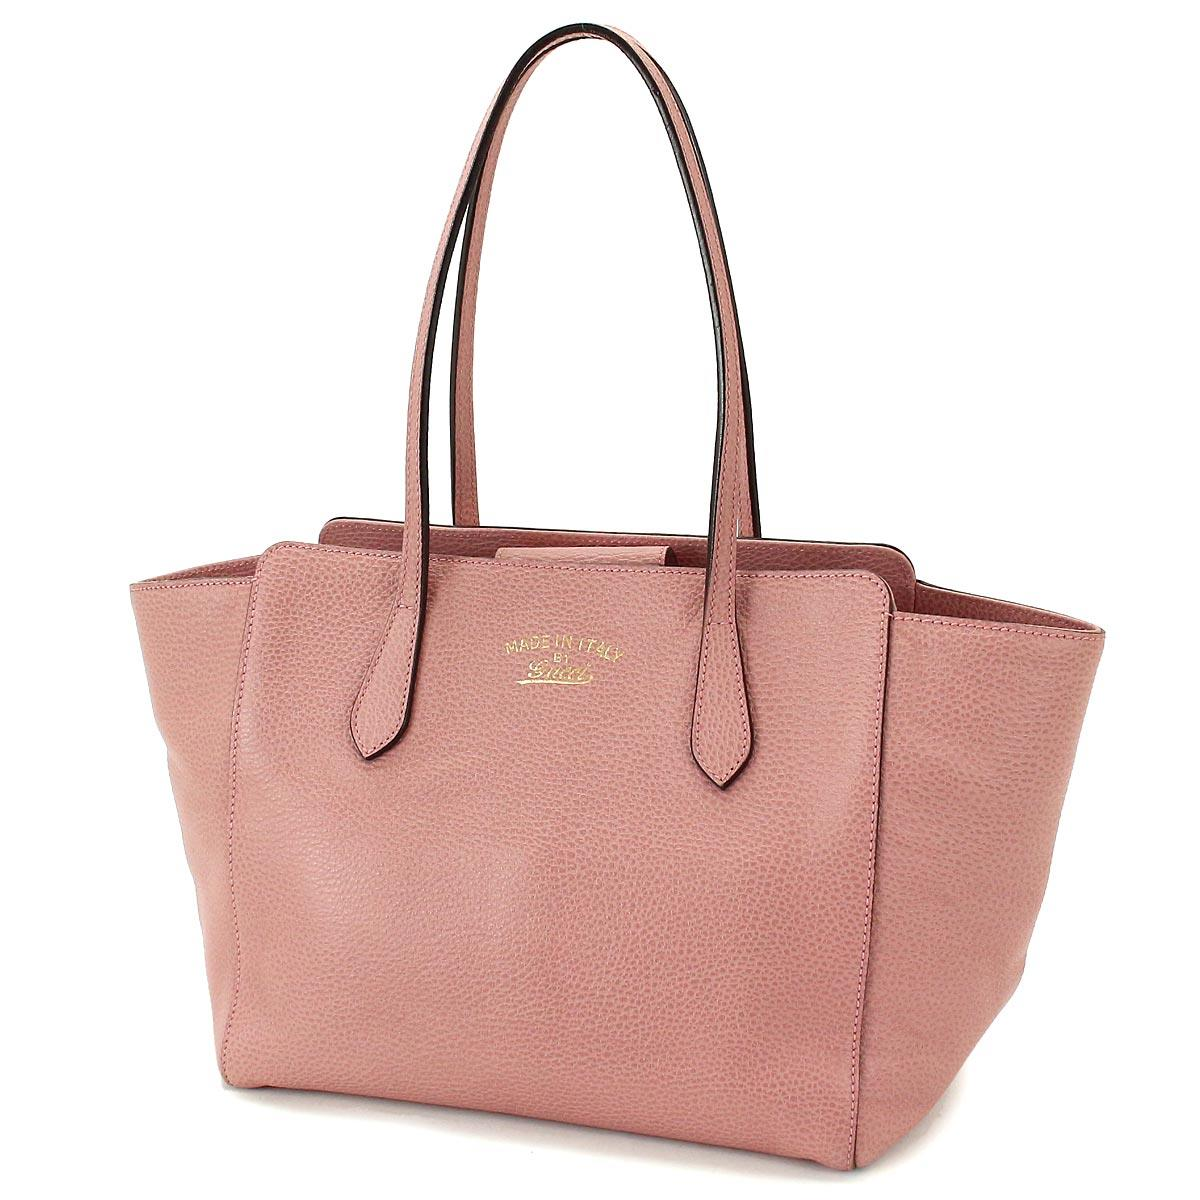 Auth GUCCI Swing Tote Shoulder Bag Leather Pink 354408 ...